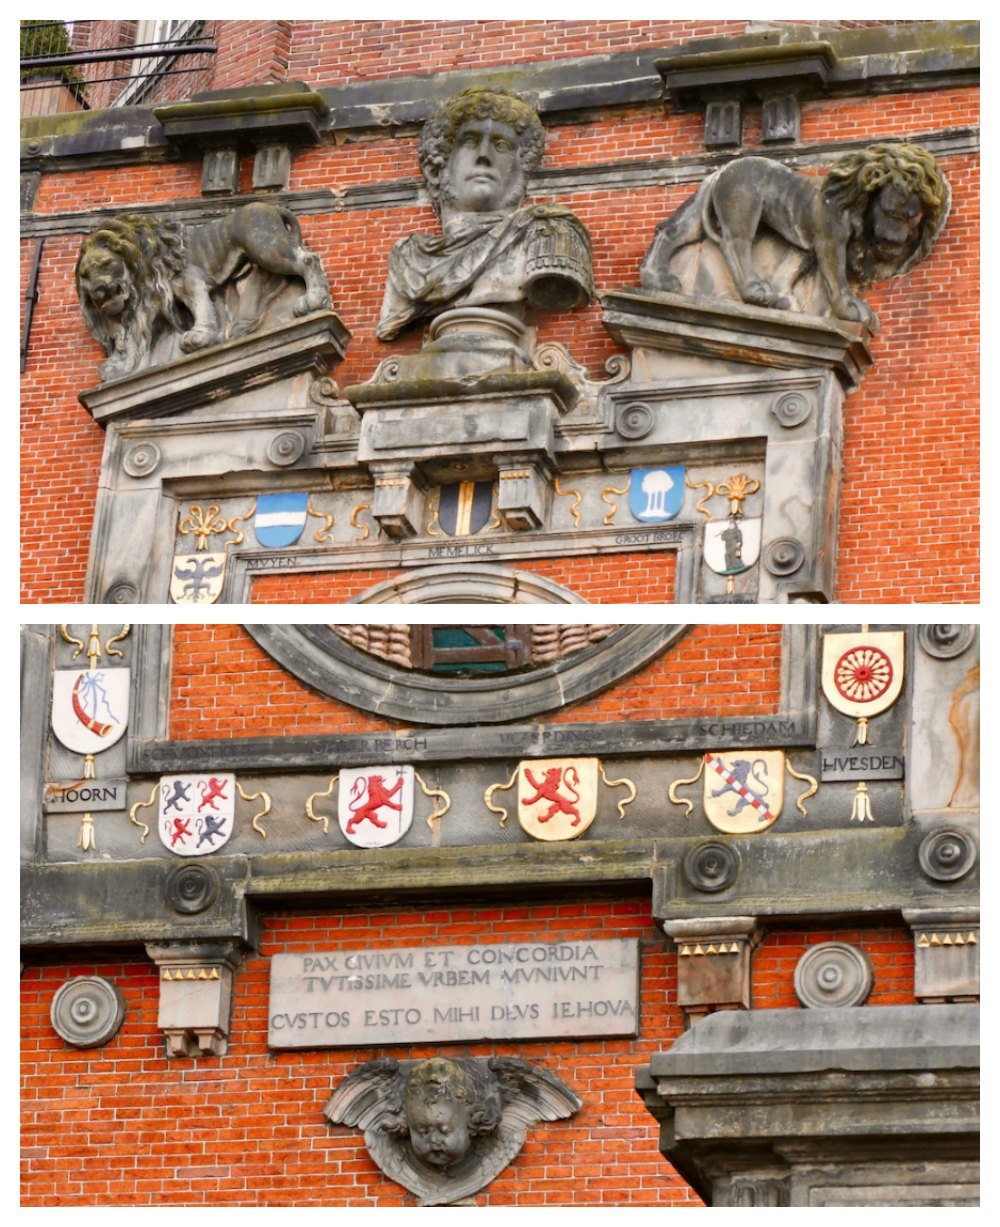 More ornaments on historic facade in Dordrecht |curlytraveller.com